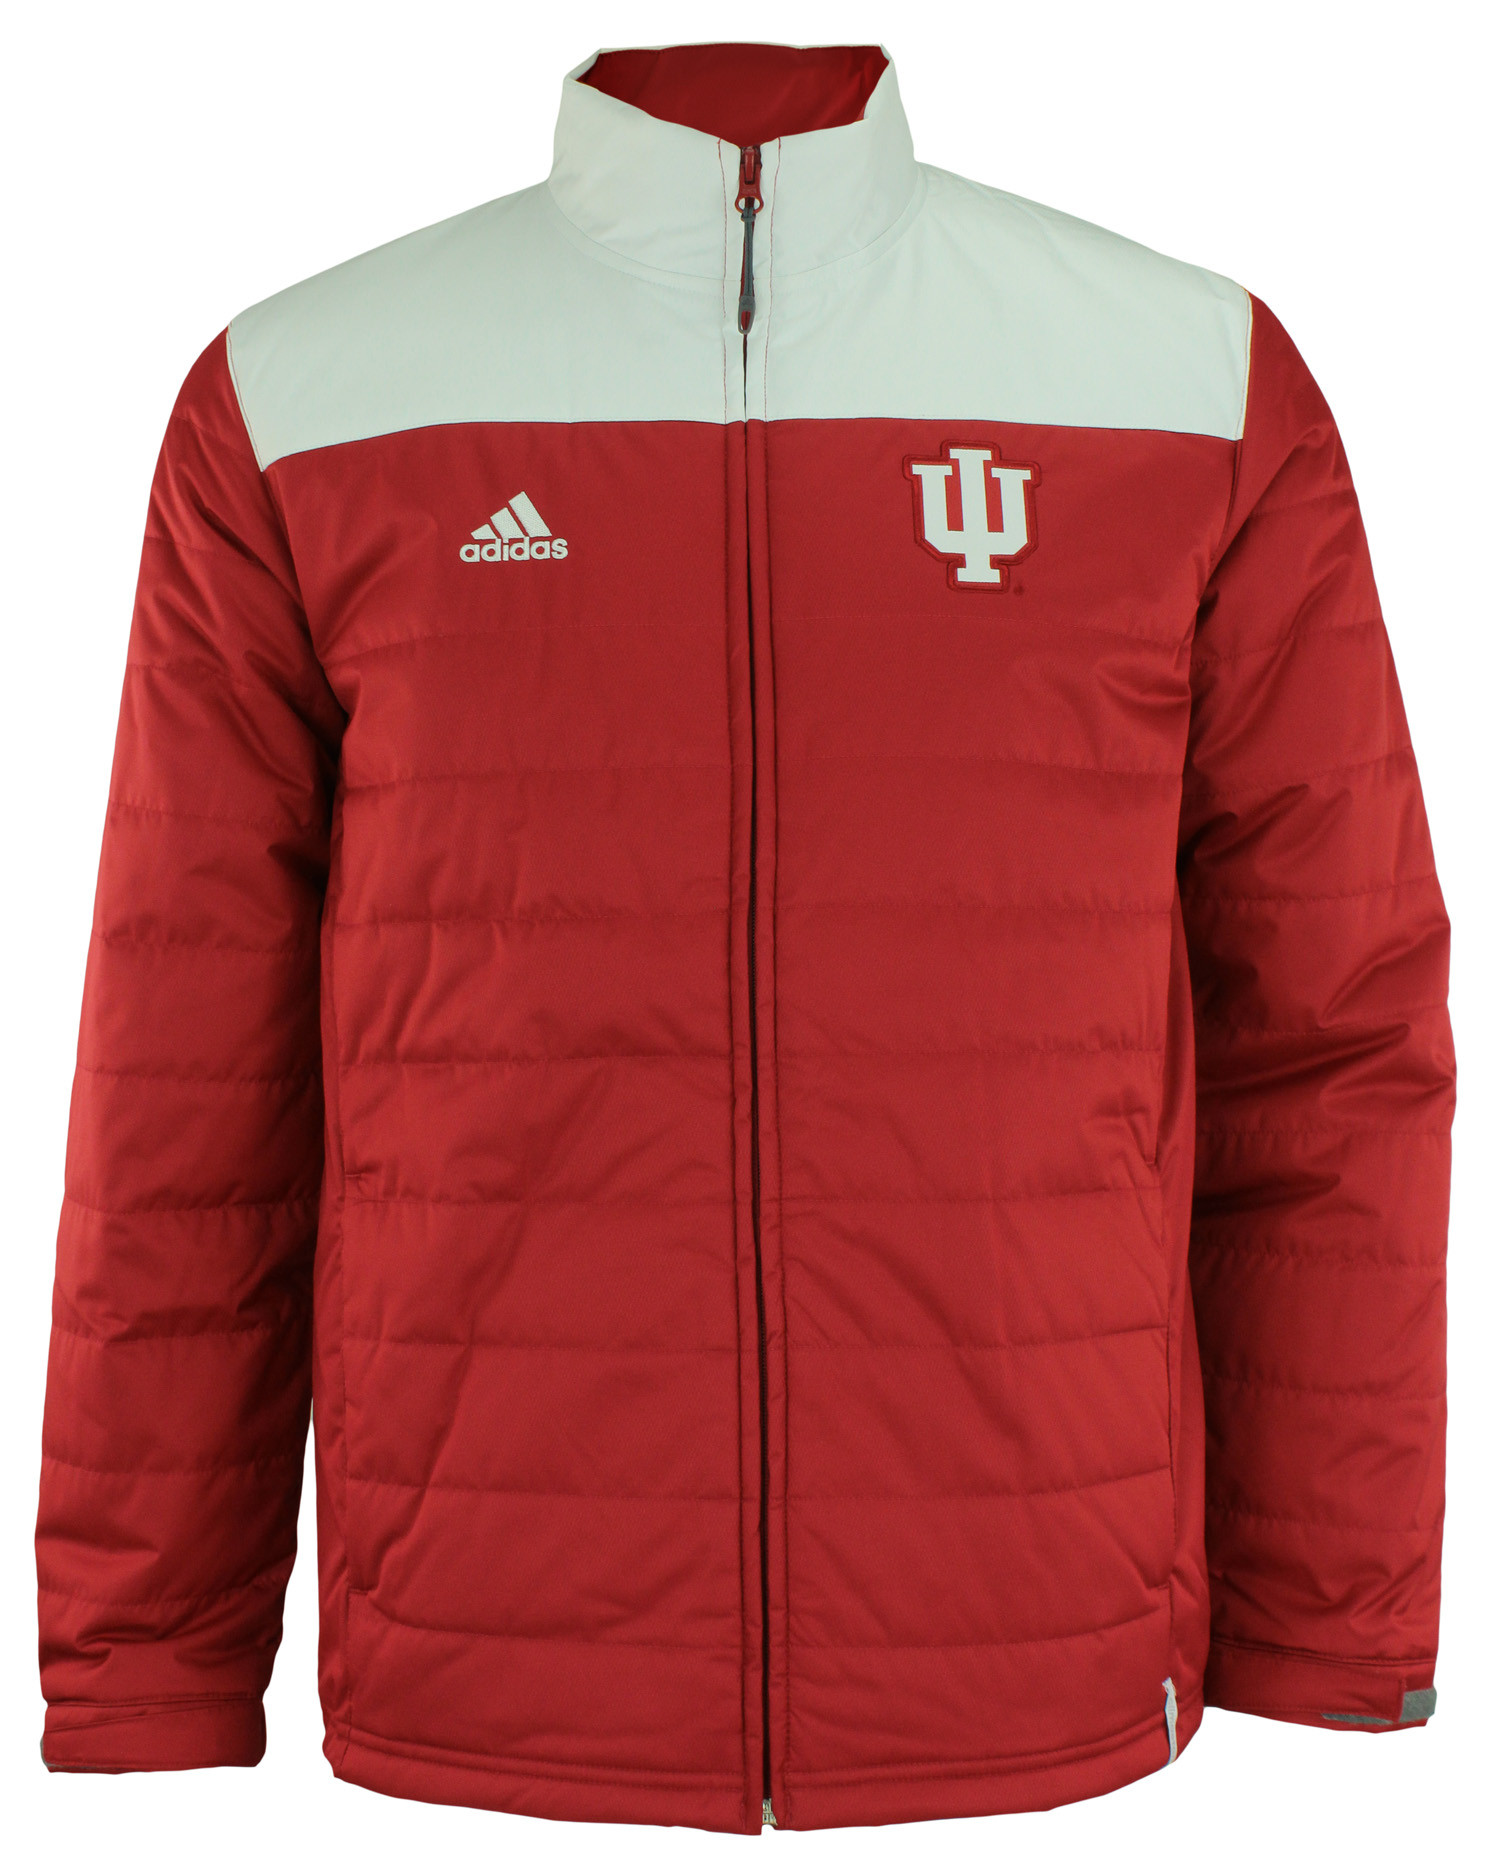 Indiana Hoosiers adidas Men/'s NCAA Climastorm Team Transition Jacket Black